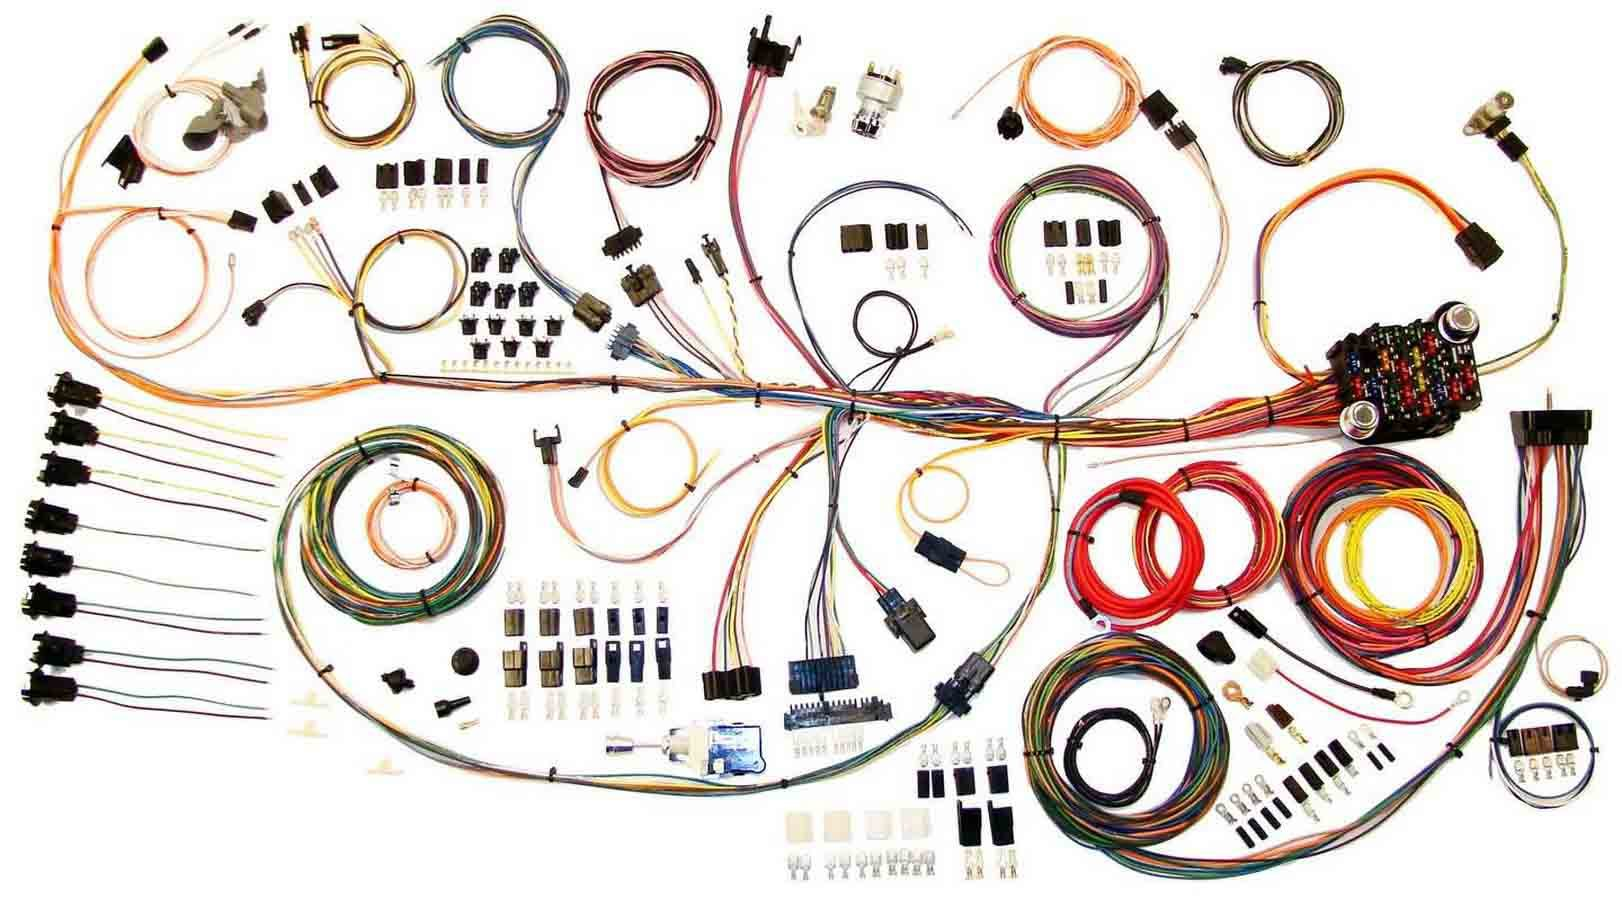 American Autowire 64-67 GTO Wiring Harness